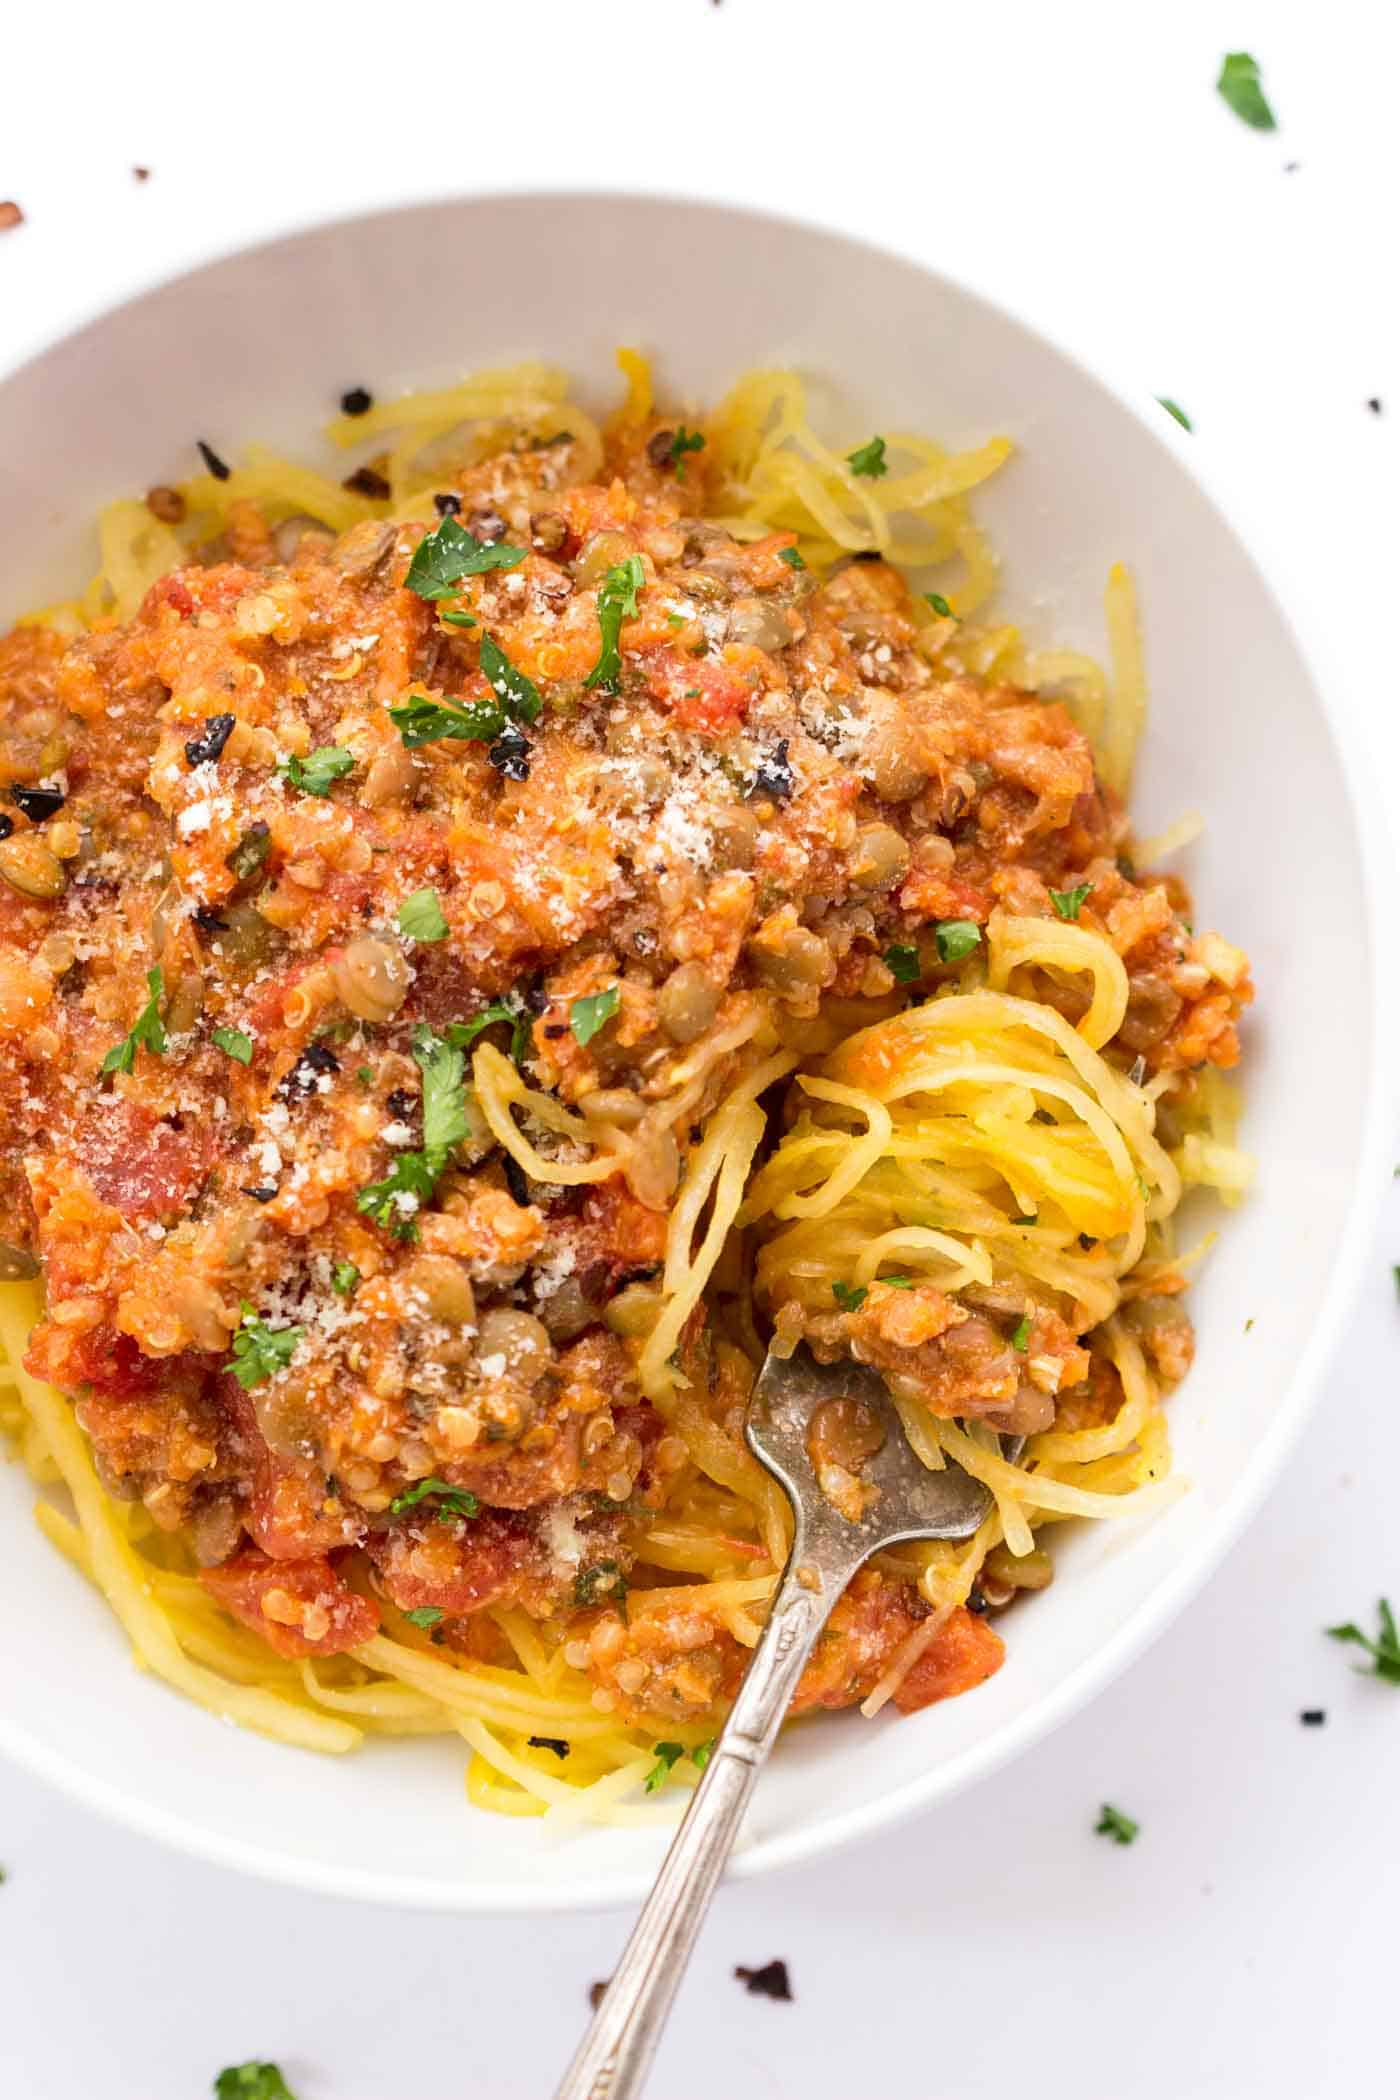 Super HEALTHY + simple lentil bolognese sauce with quinoa and served over low-cal spaghetti squash [vegan]